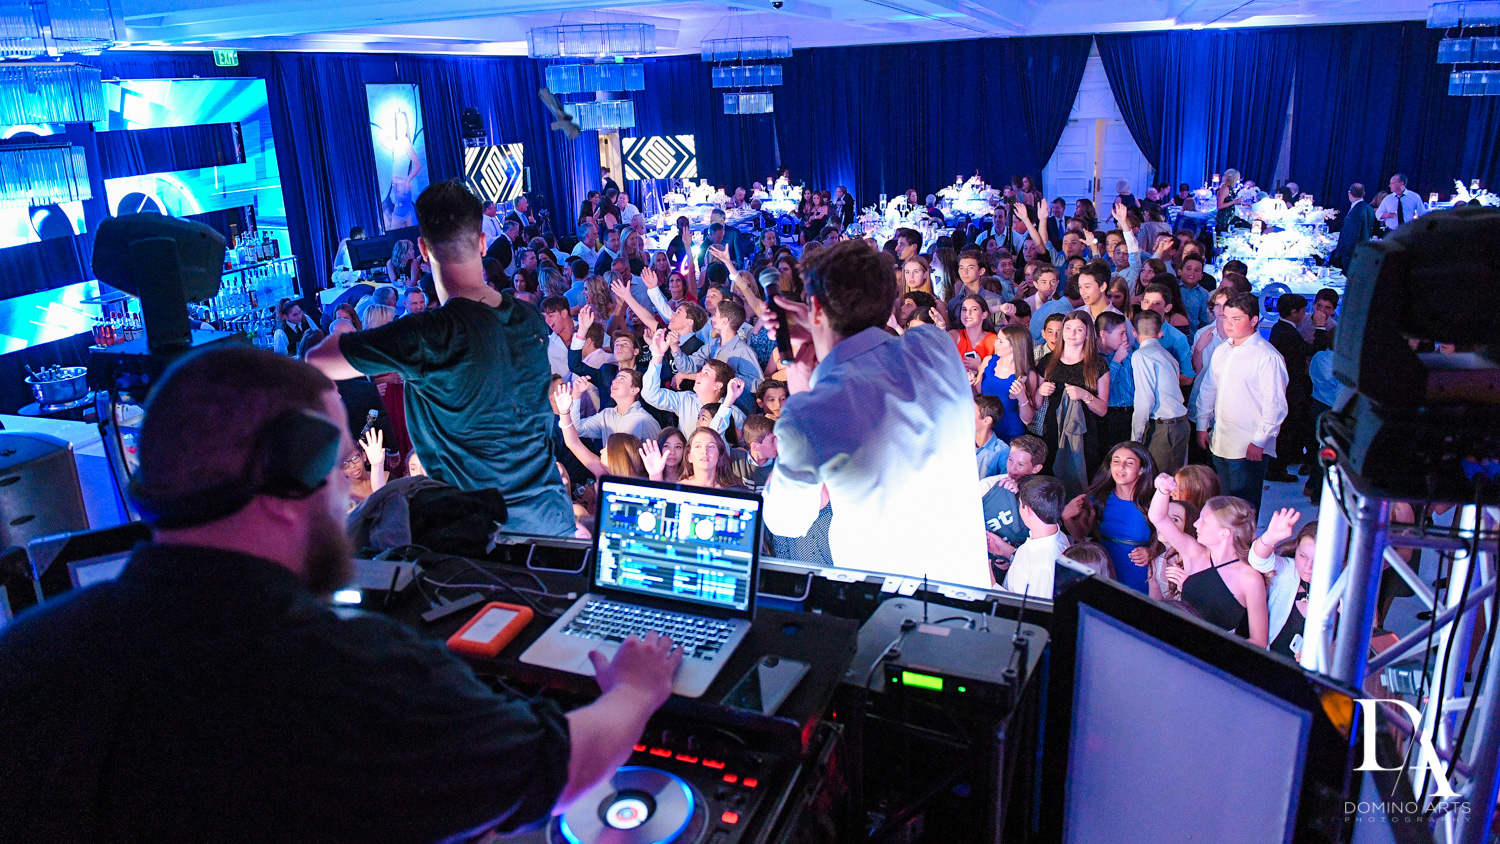 DJ party pics at Luxury B'Nai Mitzvah at Woodfield Country Club by Domino Arts Photography